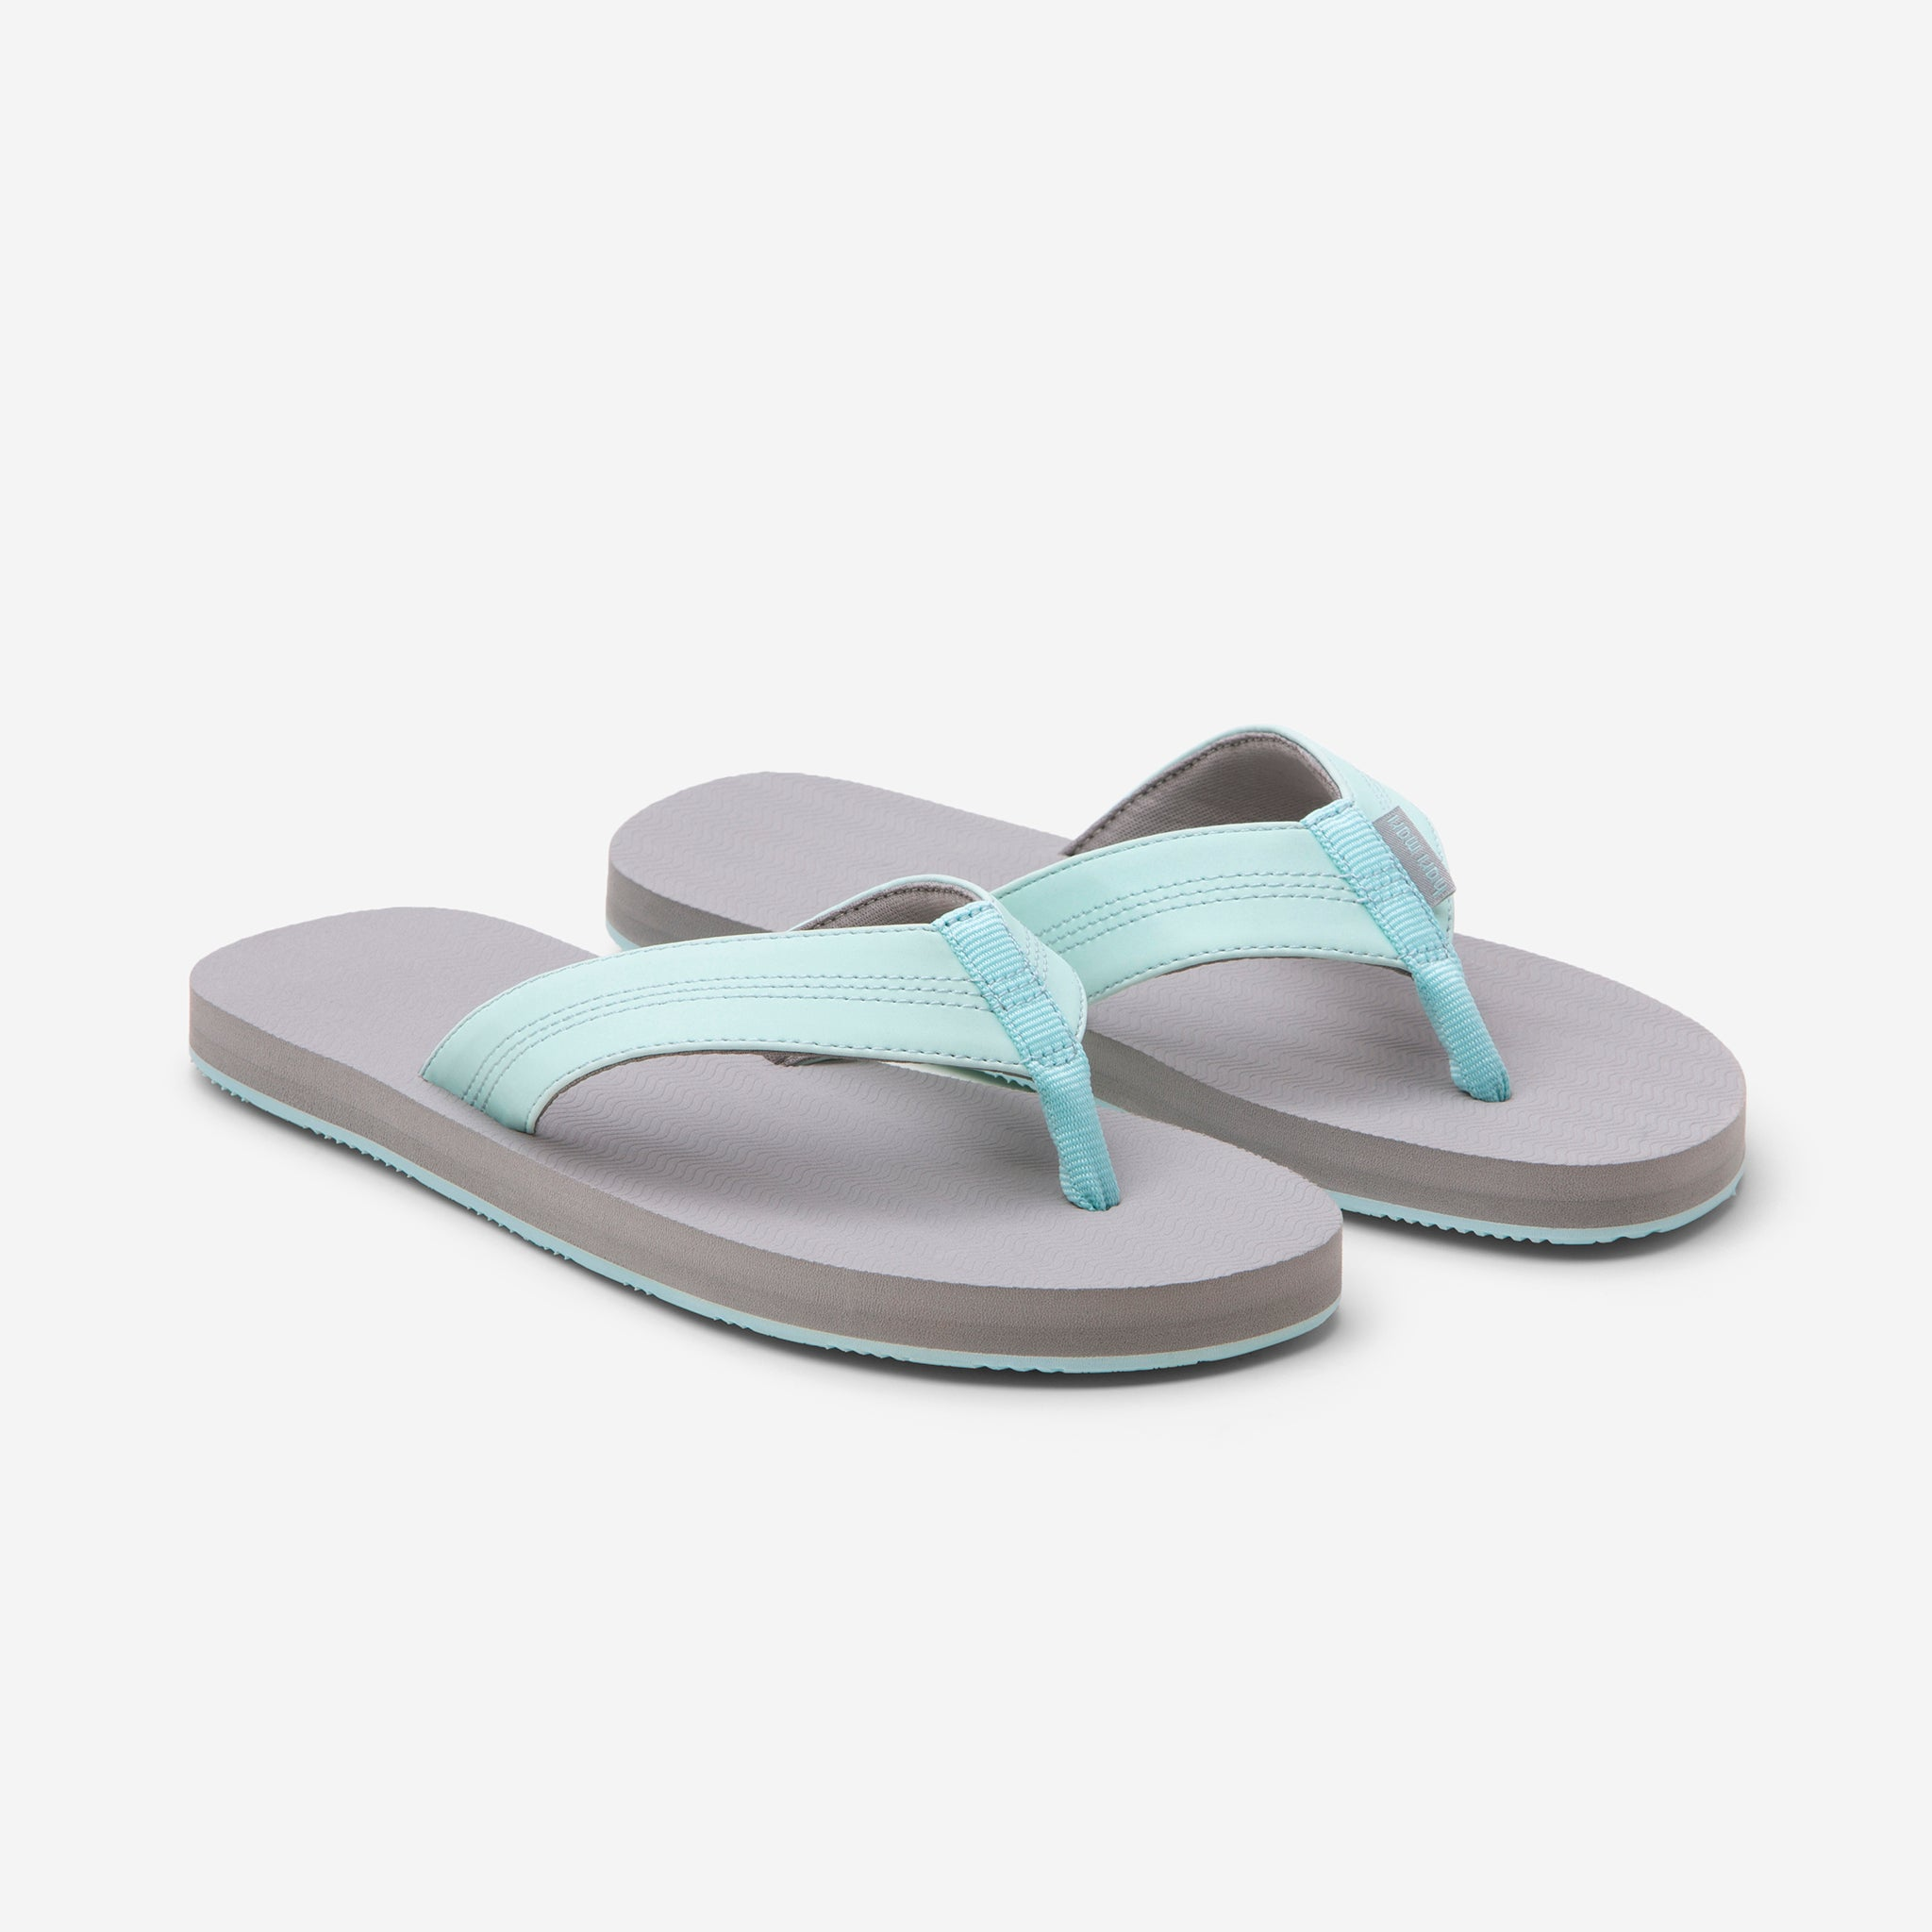 Hari Mari's Kids & Youth Brazos flip flops on white background